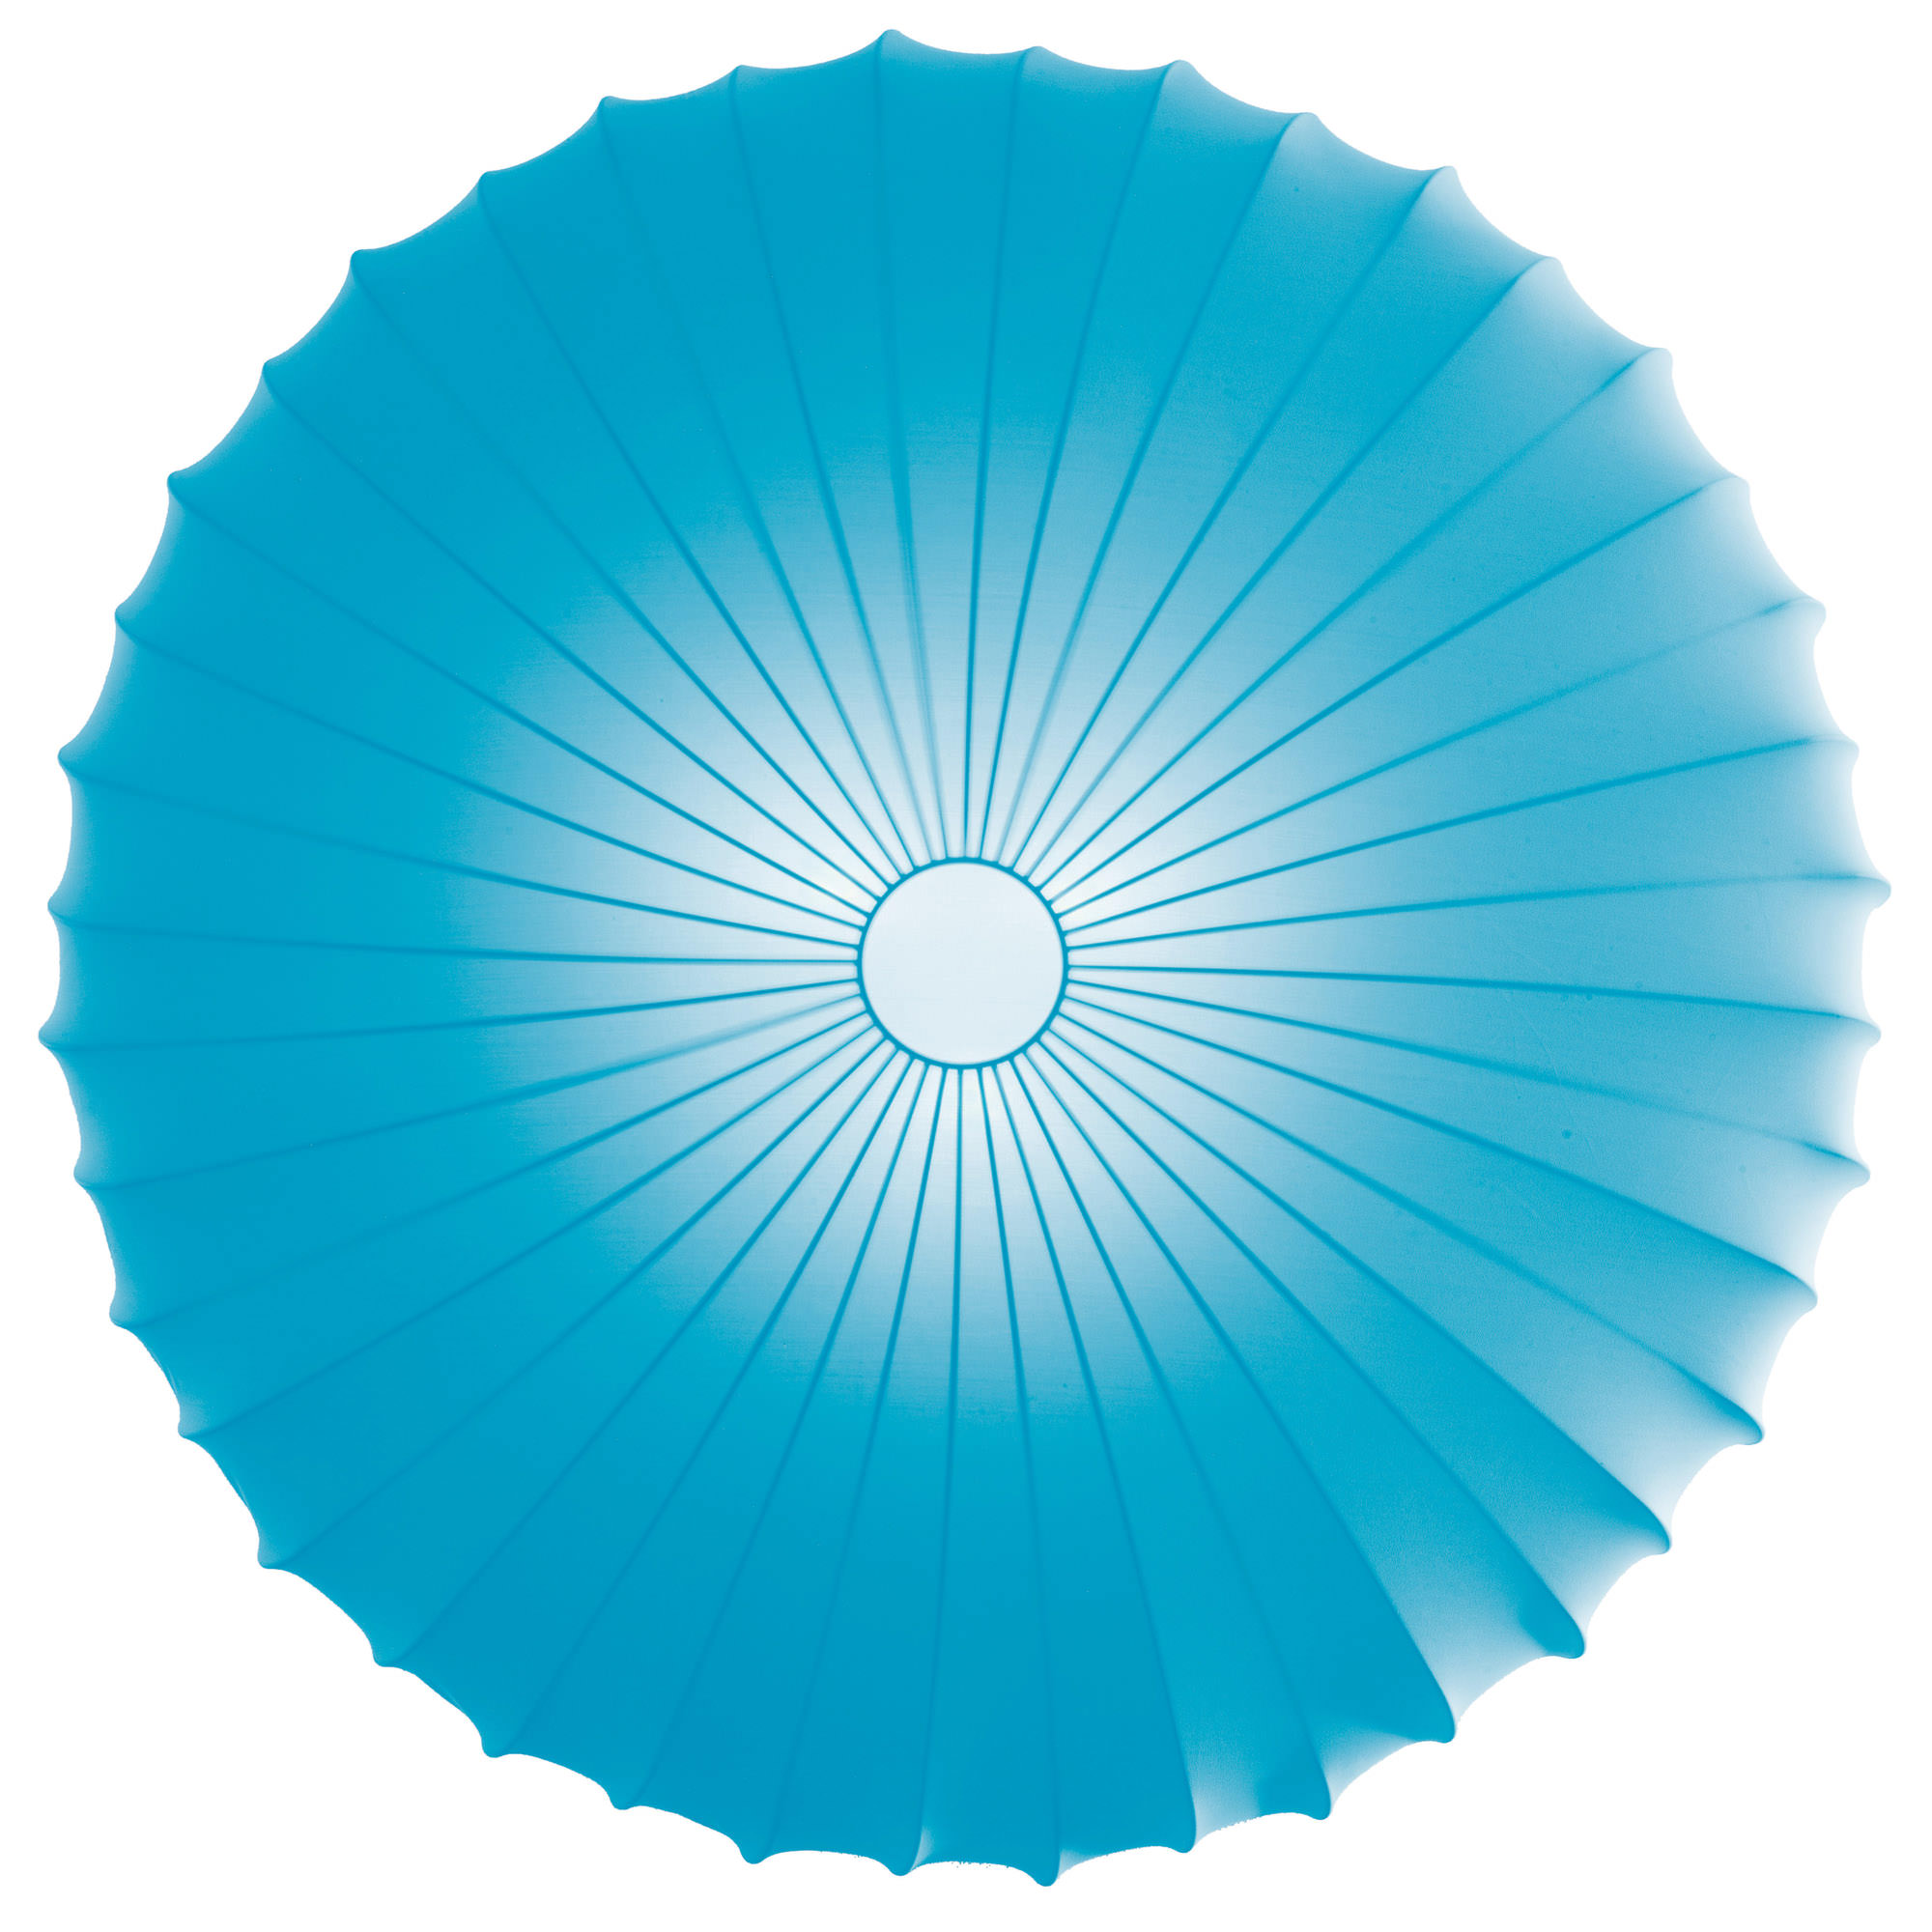 Muse 120 ceiling lamp E27 3x23w Light Blue